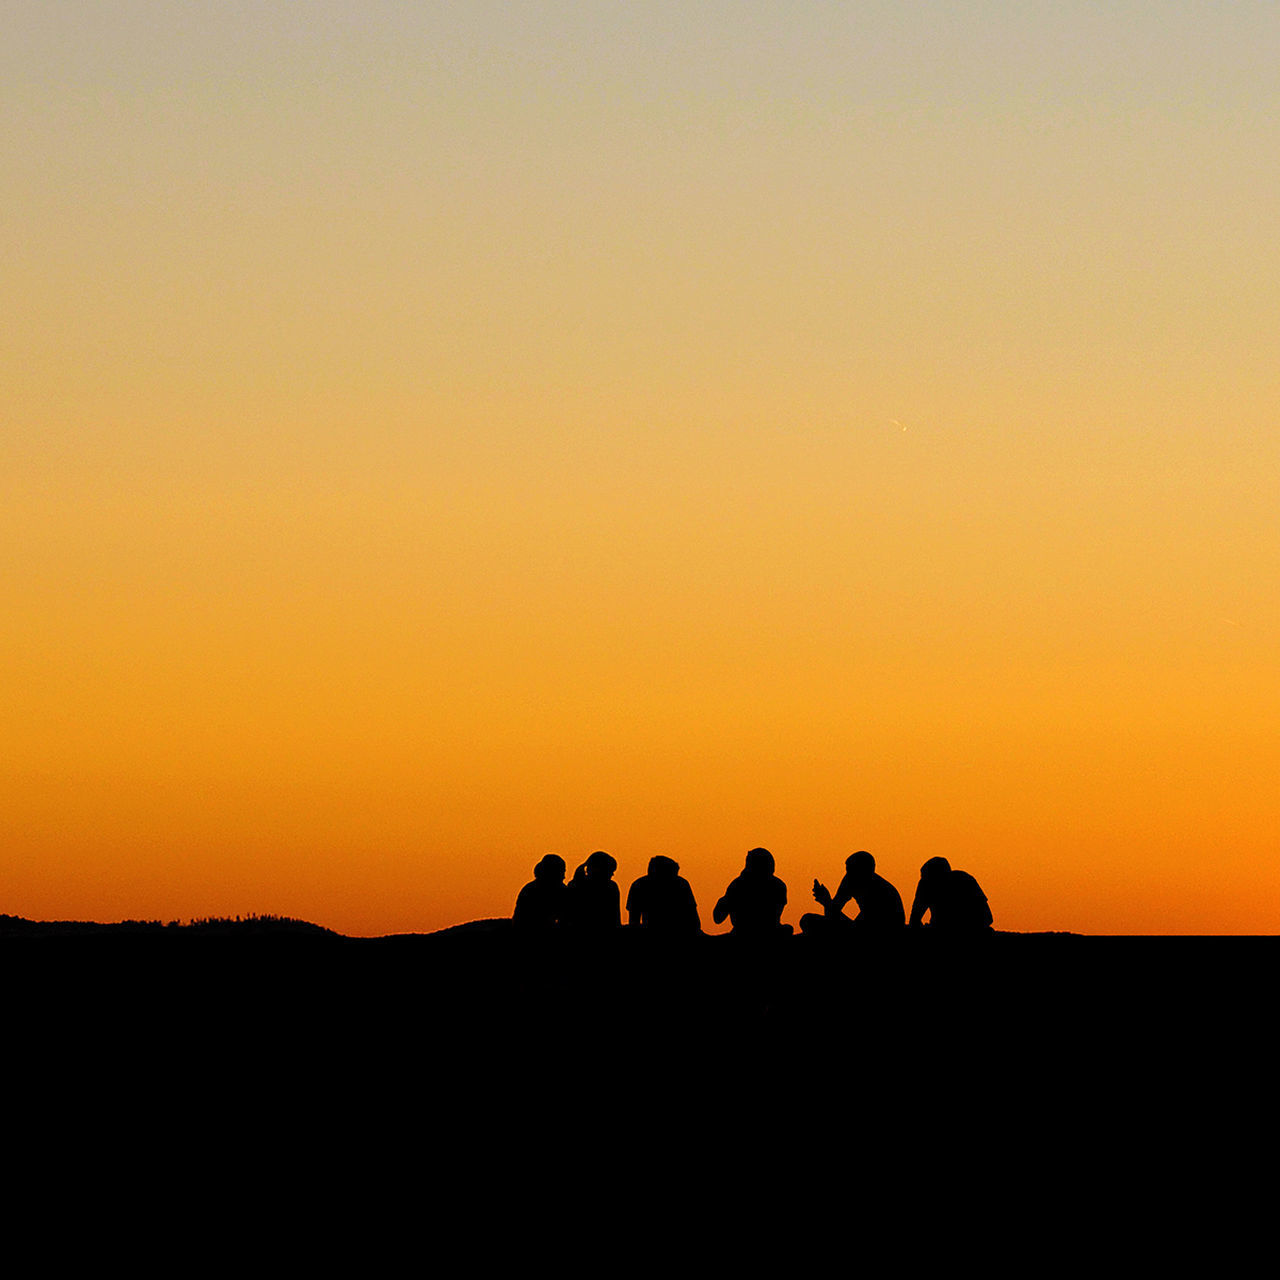 Silhouette Sunset Women Large Group Of People People Togetherness Beauty In Nature Men Friendship Teamwork Adult Nature Sunrise Sunset Silhouettes Sunlight Sunday Sunny Simple Photography Silhouettes Moments Live, Love, Laugh Life In Colors First Eyeem Photo